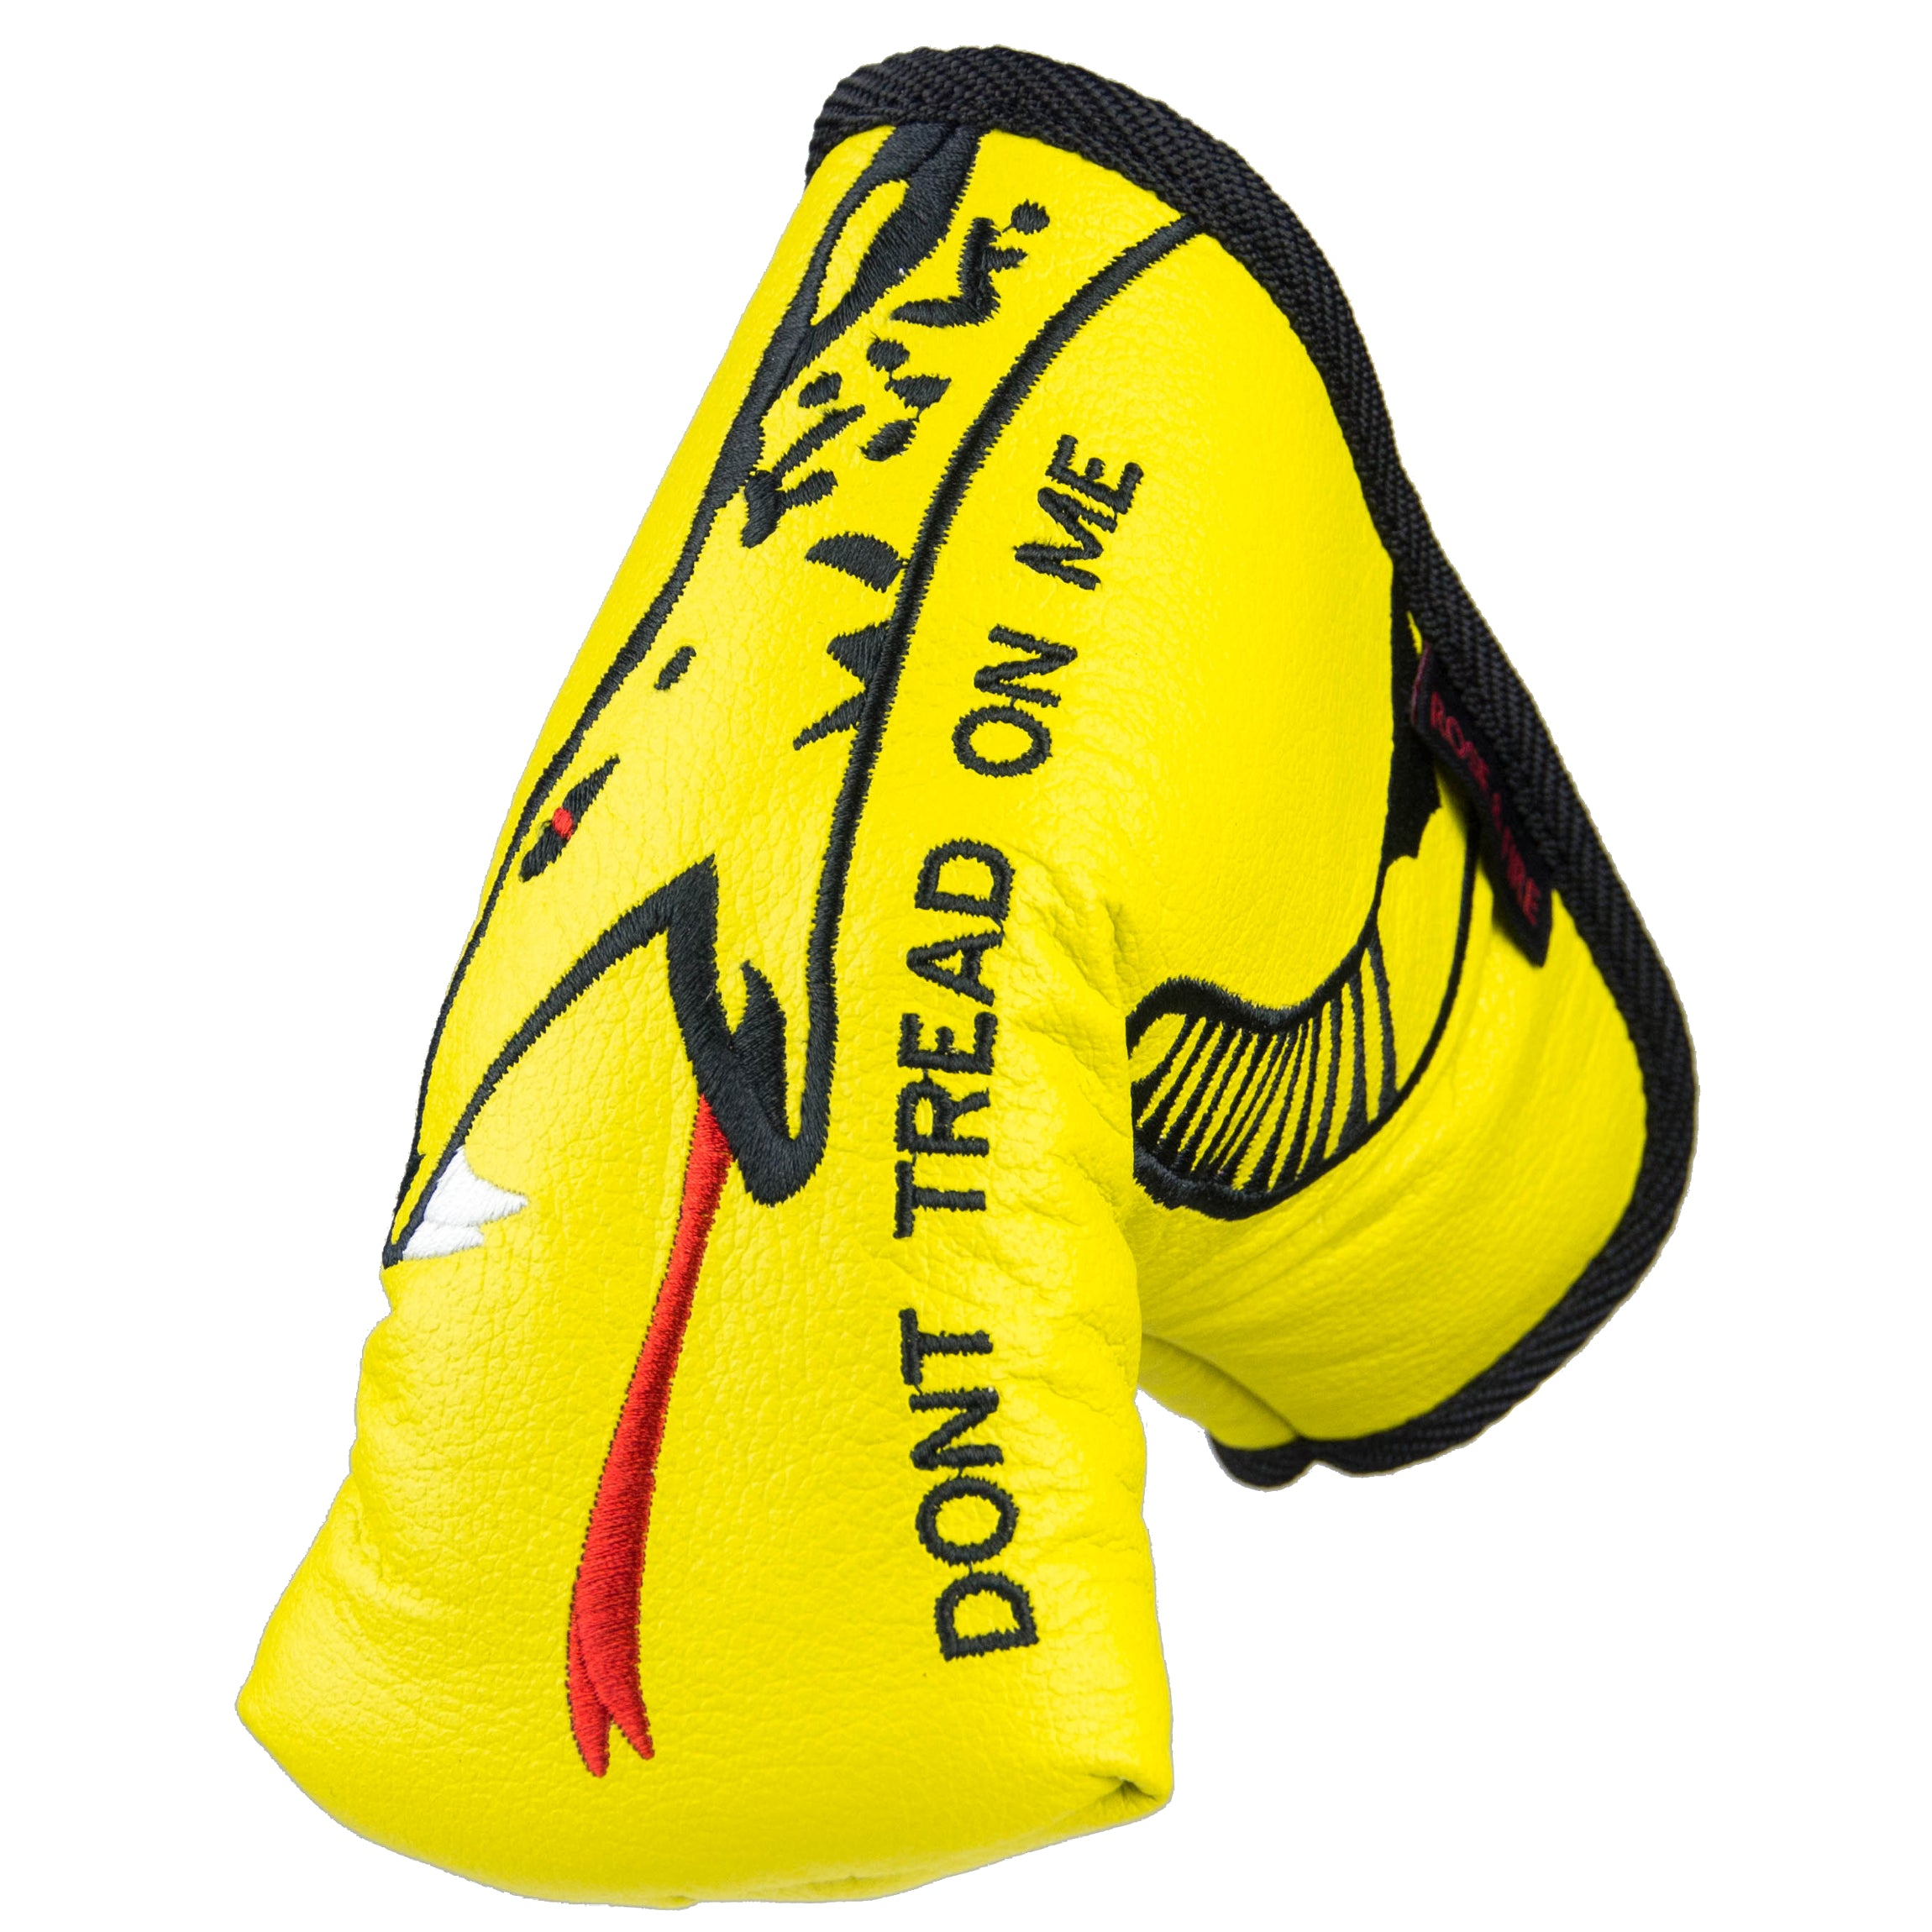 dont tread on me premium usa leather standard putter cover rose